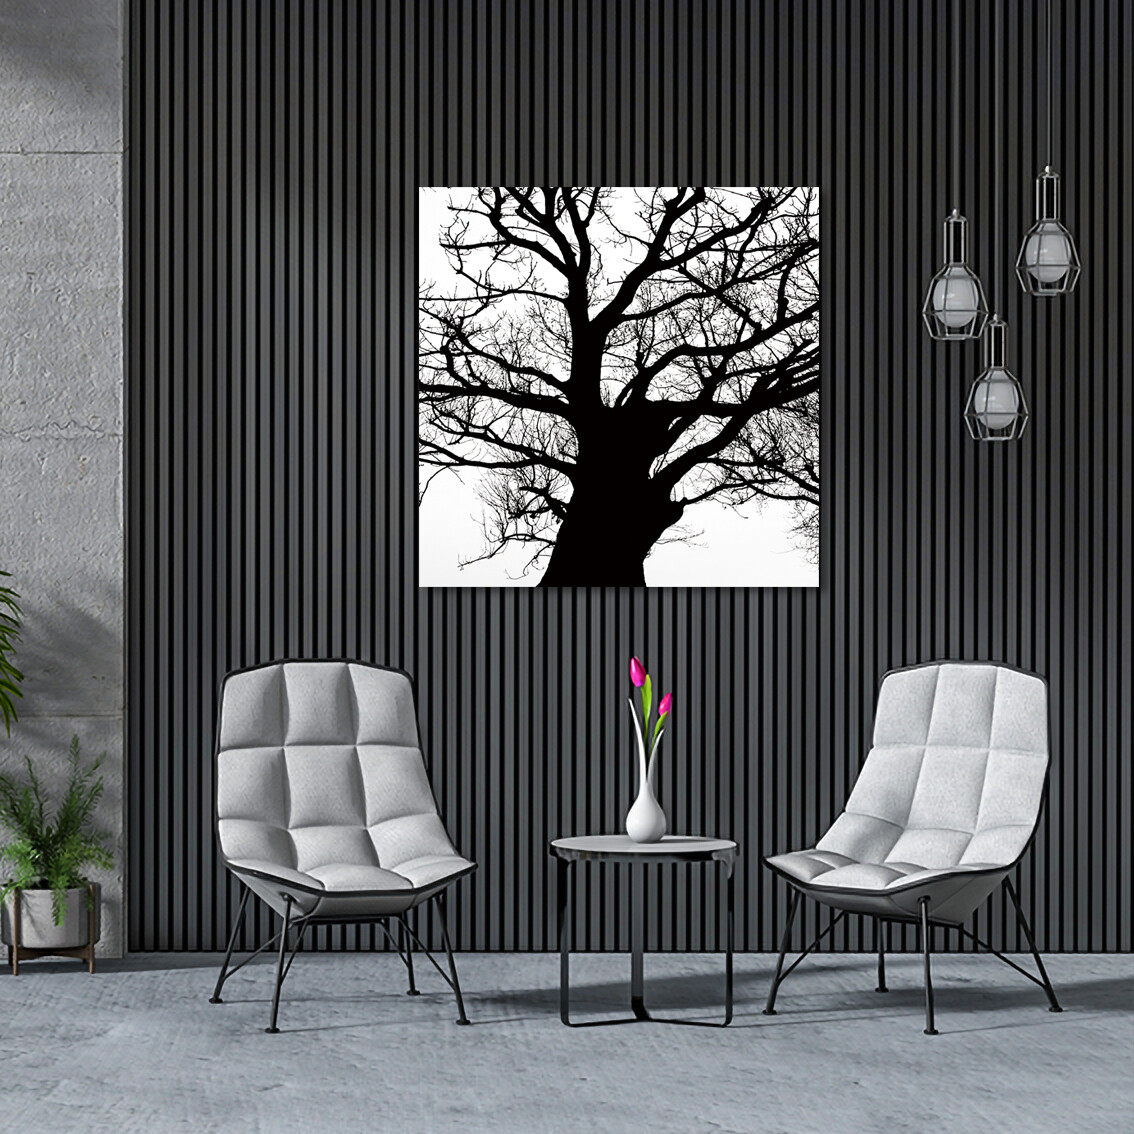 Looking Up Tree Black and White  - Modern Luxury Wall art Printed on Acrylic Glass - Frameless and Ready to Hang